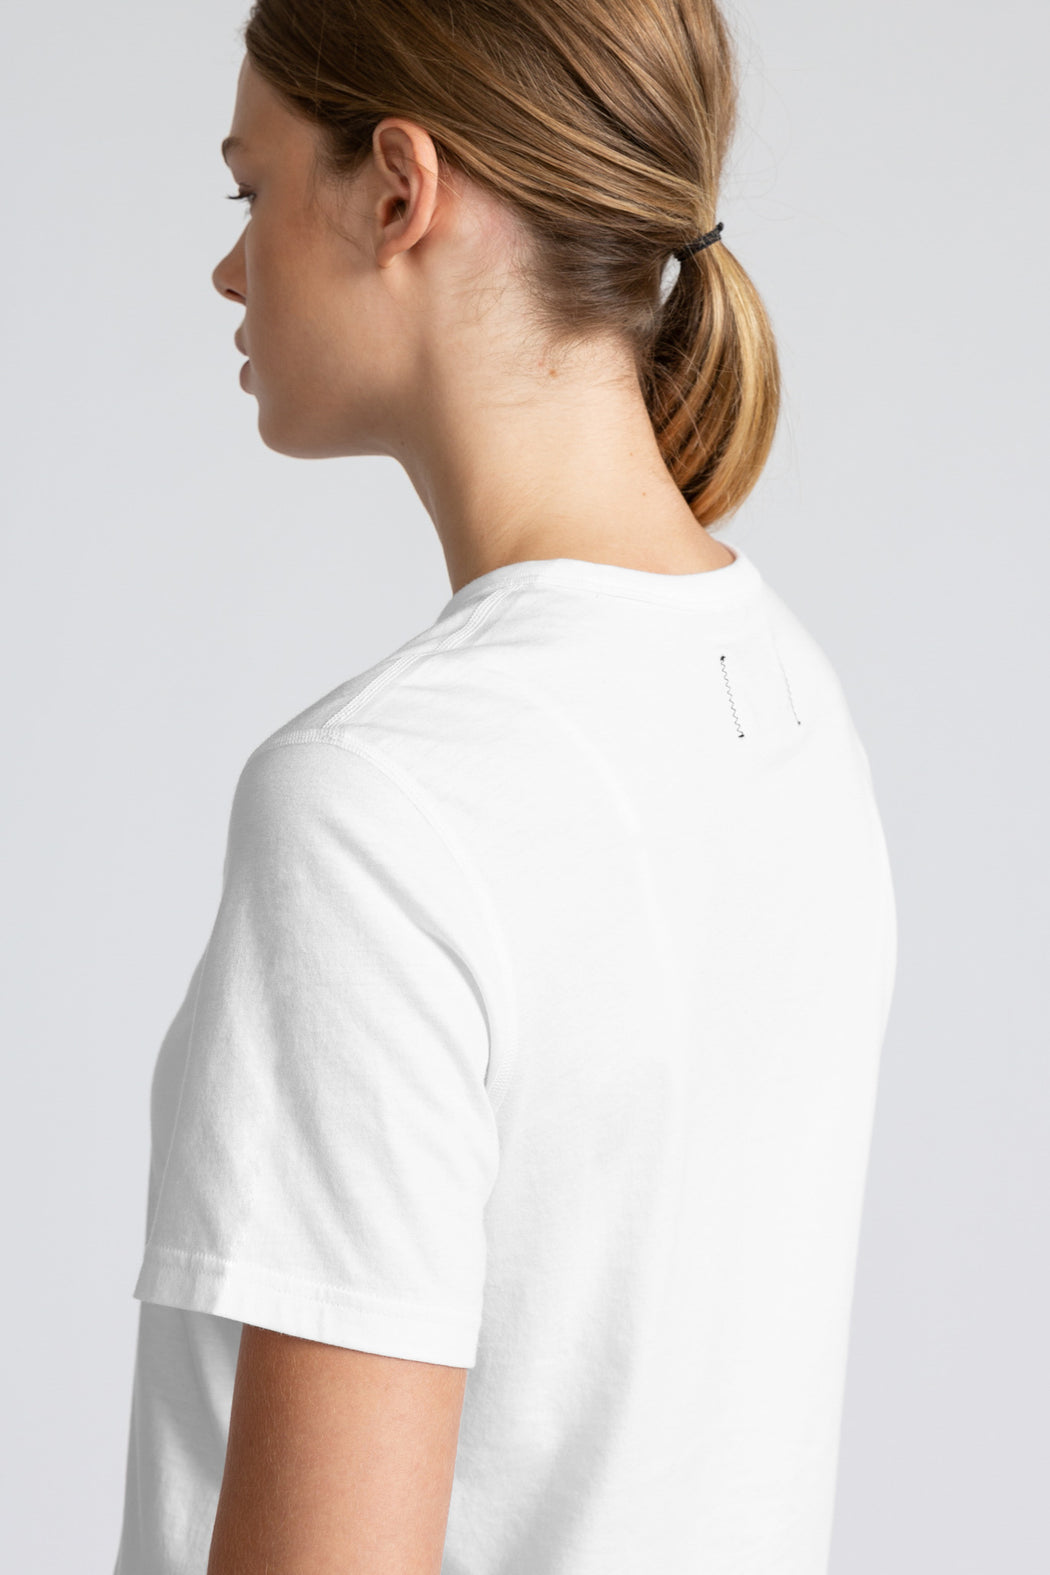 Reigning Champ Box Fit T-Shirt in White